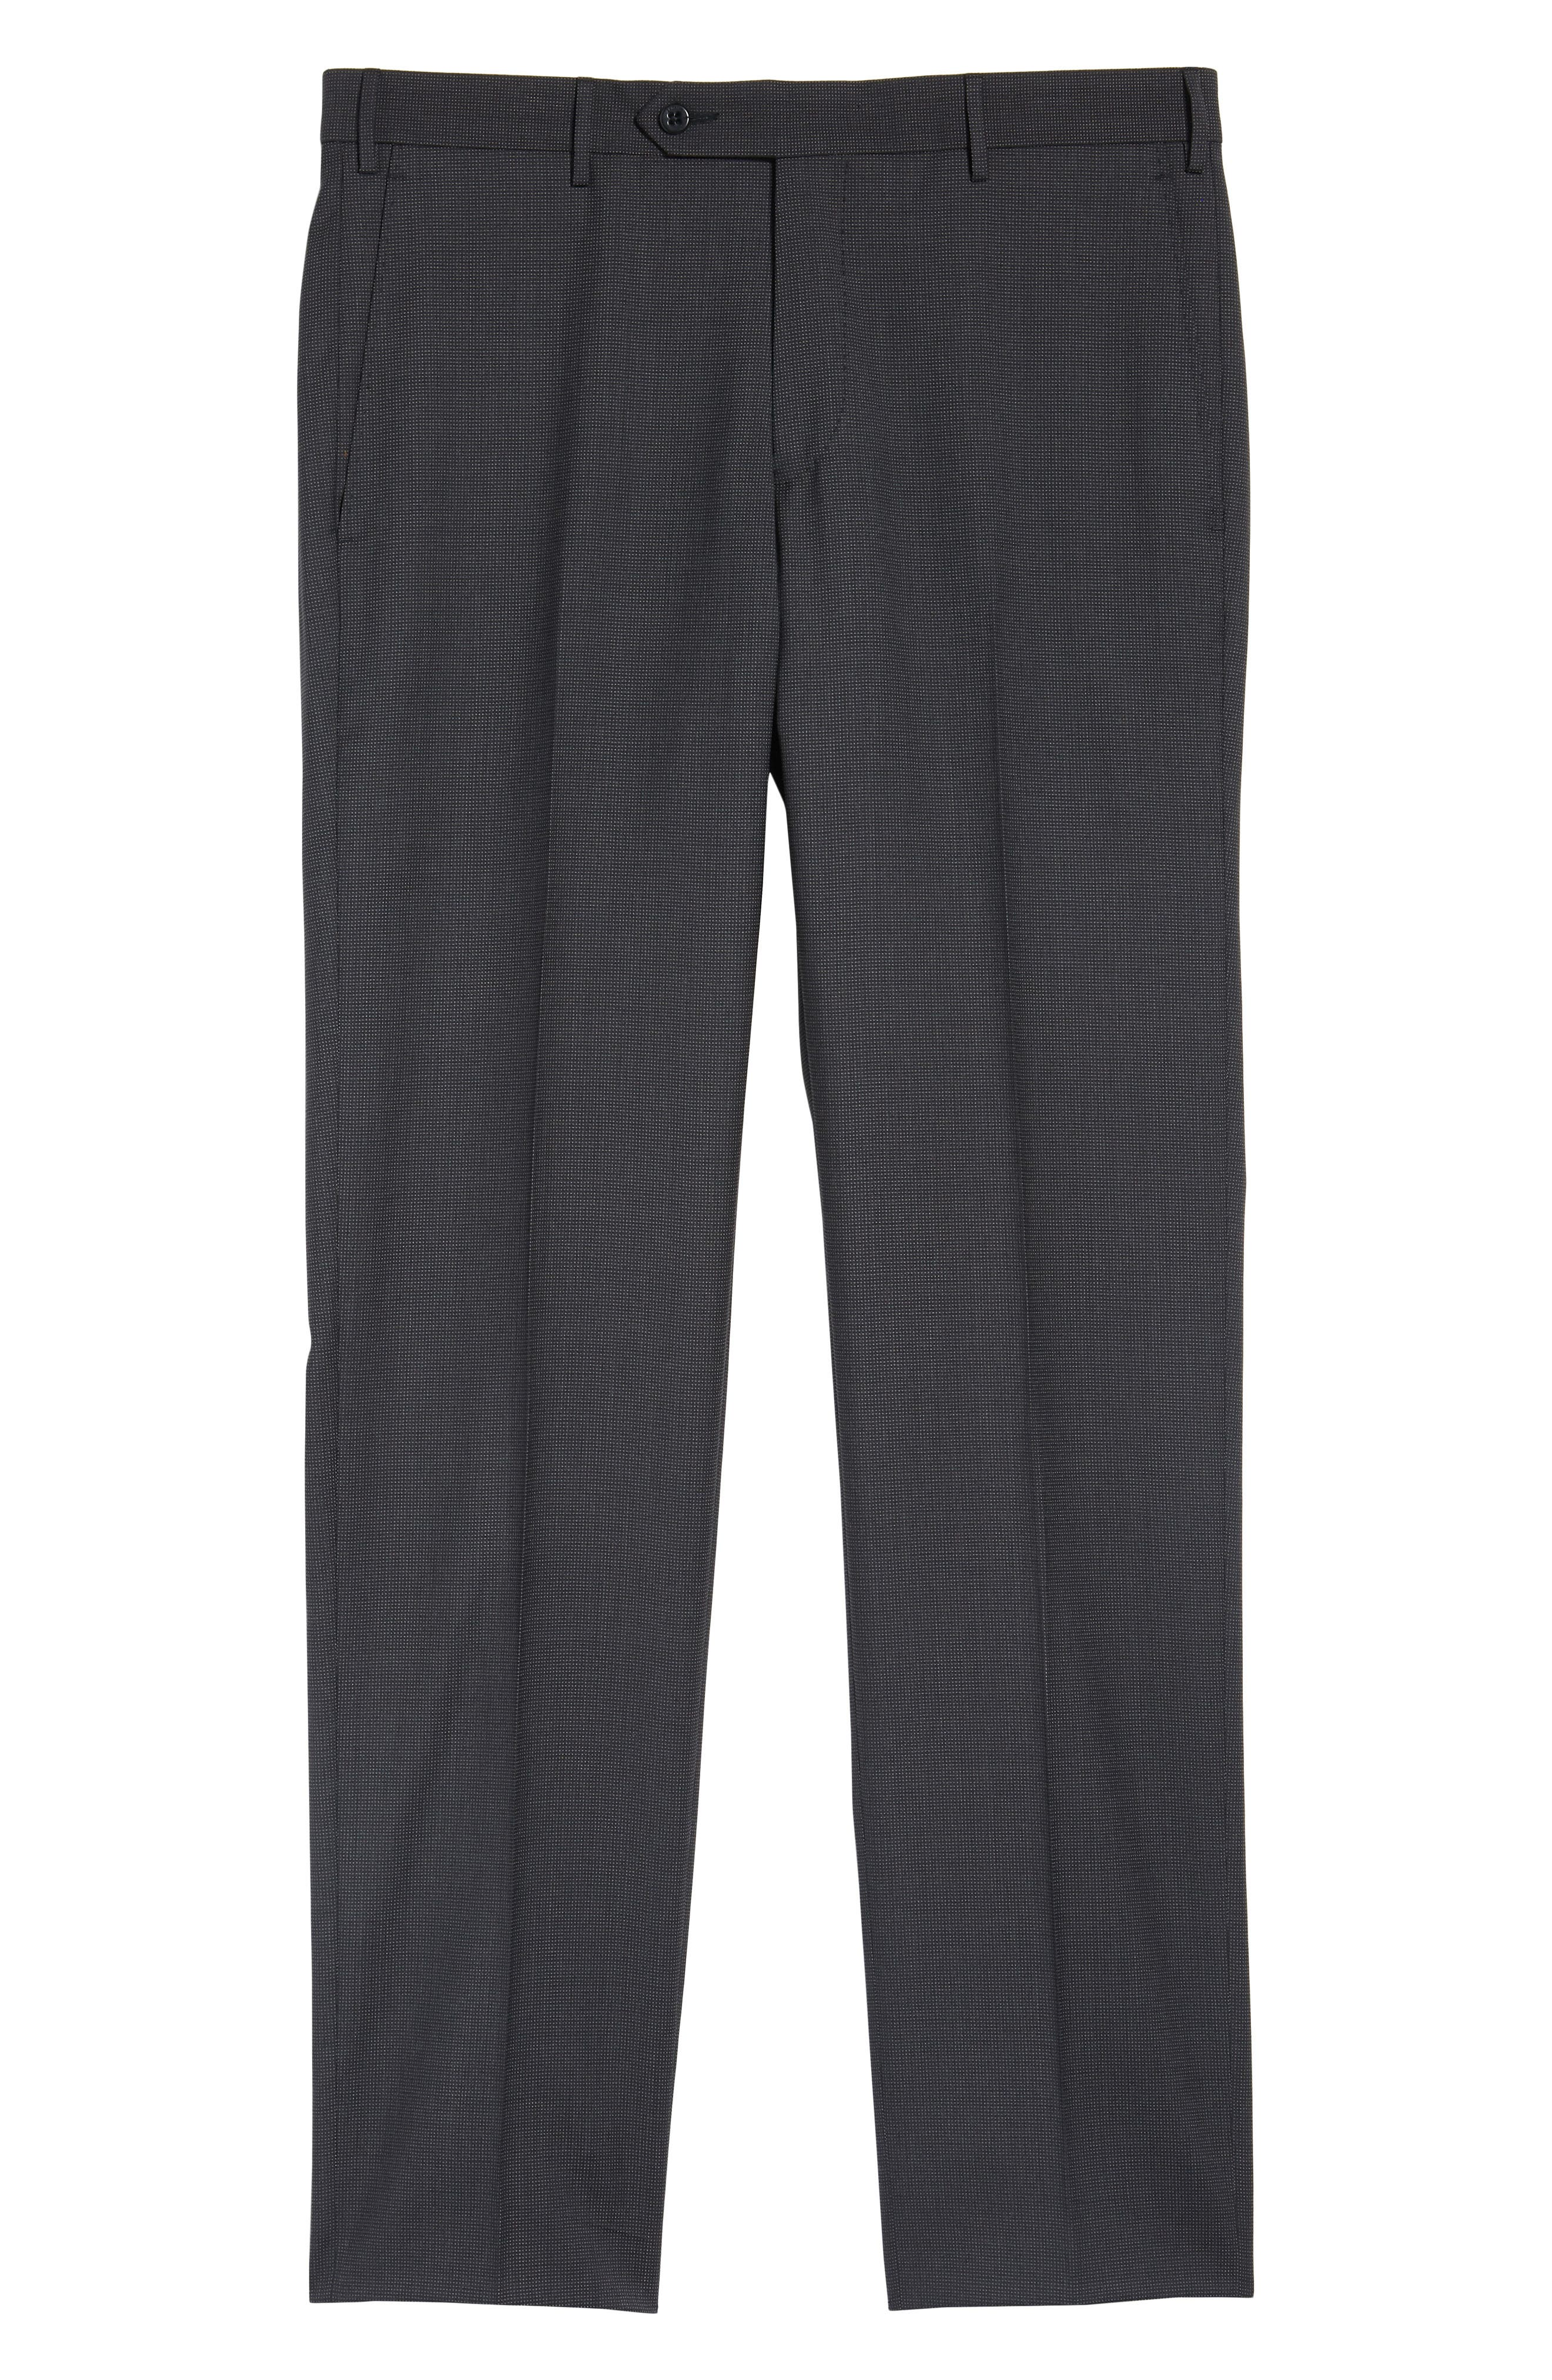 Parker Flat Front Pindot Wool Trousers,                             Alternate thumbnail 6, color,                             020